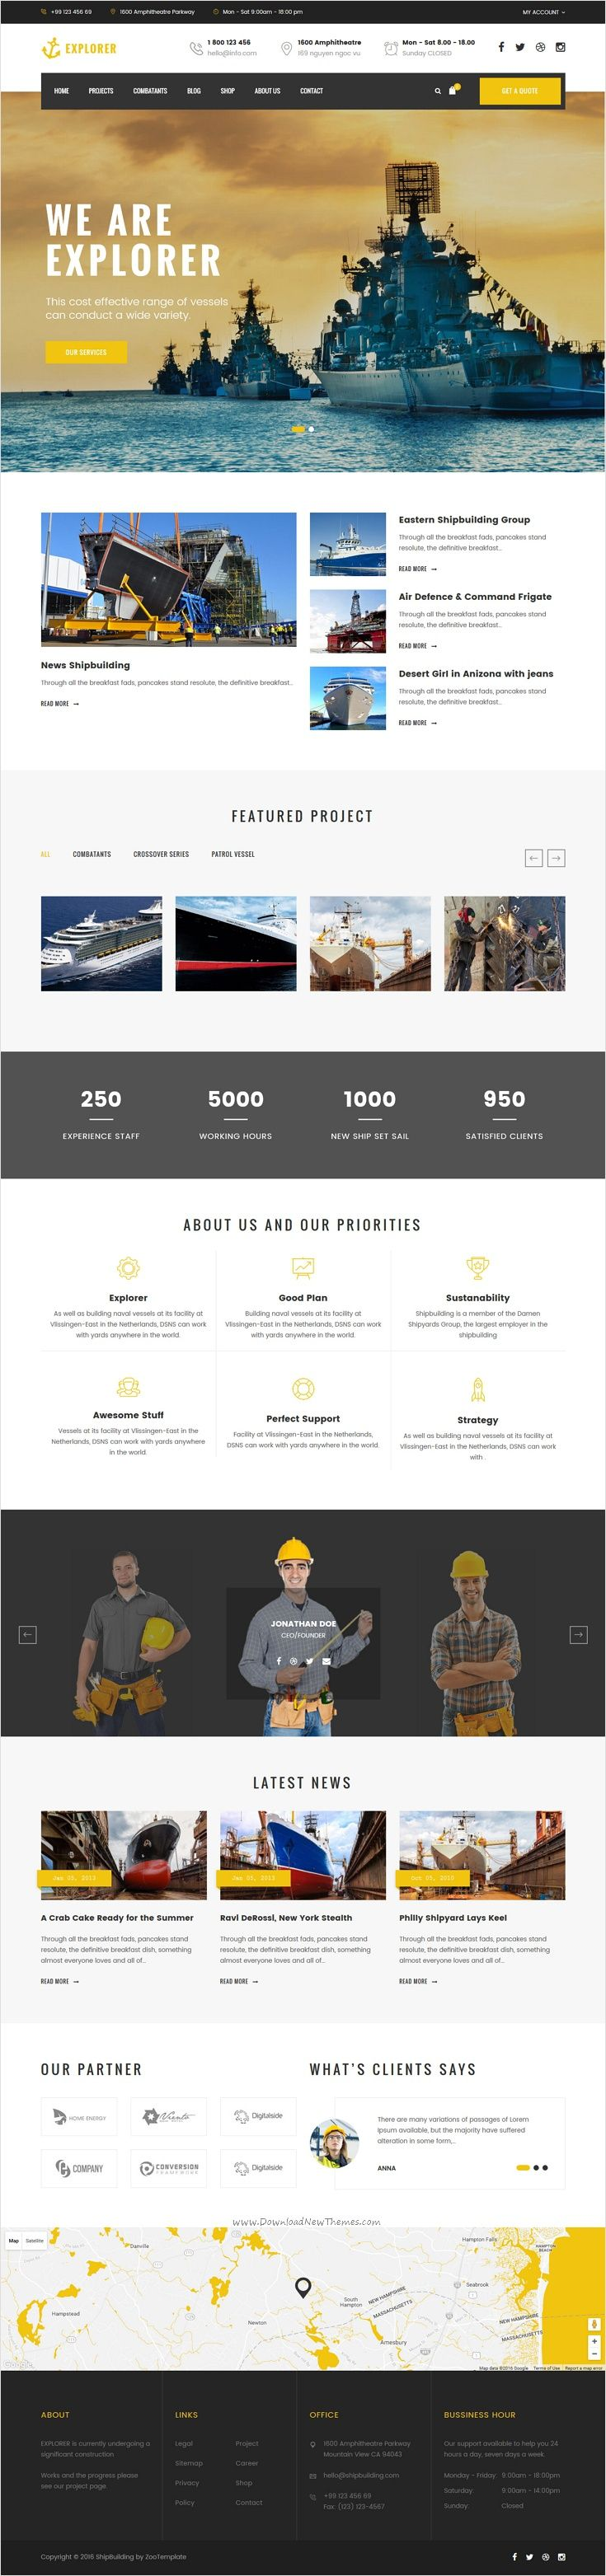 Explorer is a perfect responsive 3 in 1 #Joomla Template for Ship #Business, #Factory, Industrial, Construction, Commodity, Oil & Gas or Pretorium company website download now➩ https://themeforest.net/item/explorer-factory-construction-ship-building-wordpress-theme/18175608?ref=Datasata